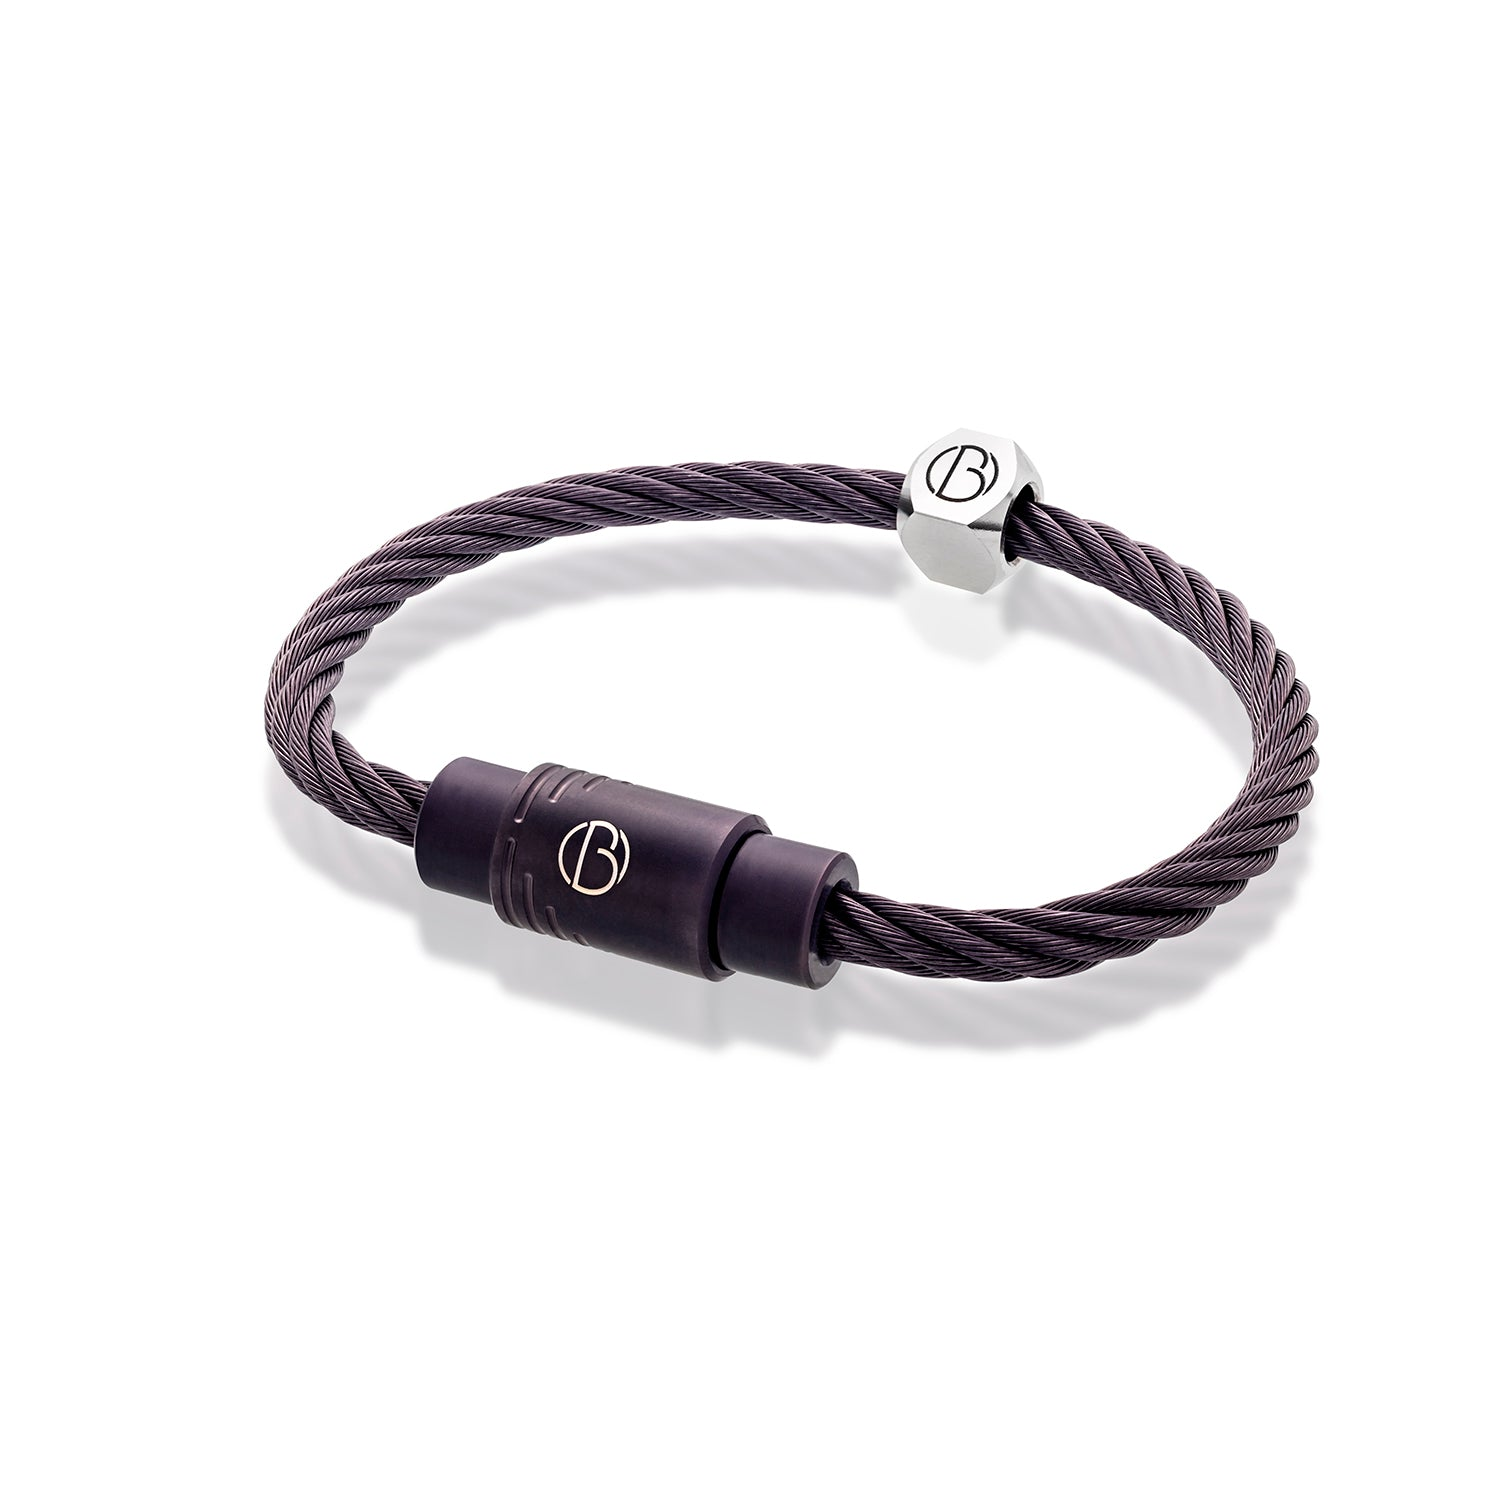 CABLE™Anthracite Stainless Steel Bracelet